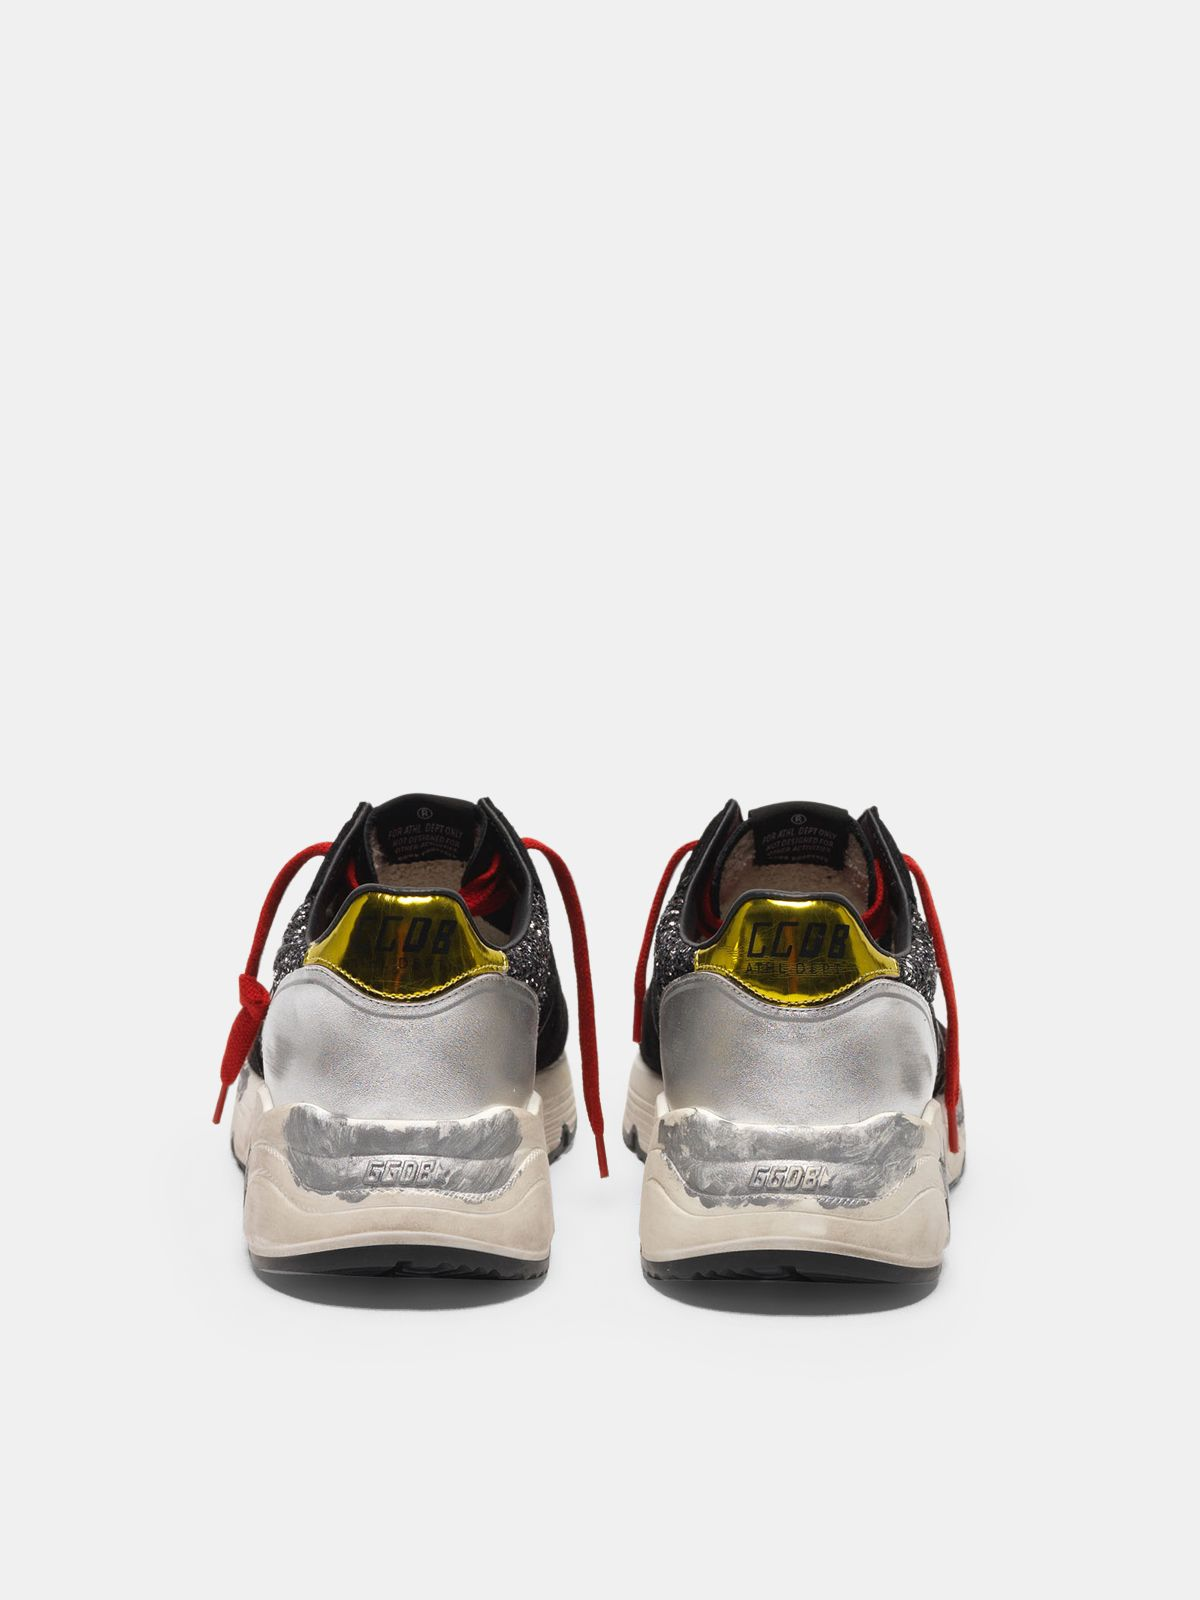 Golden Goose - Running Sole sneakers with glitter, laminated leather and red laces in